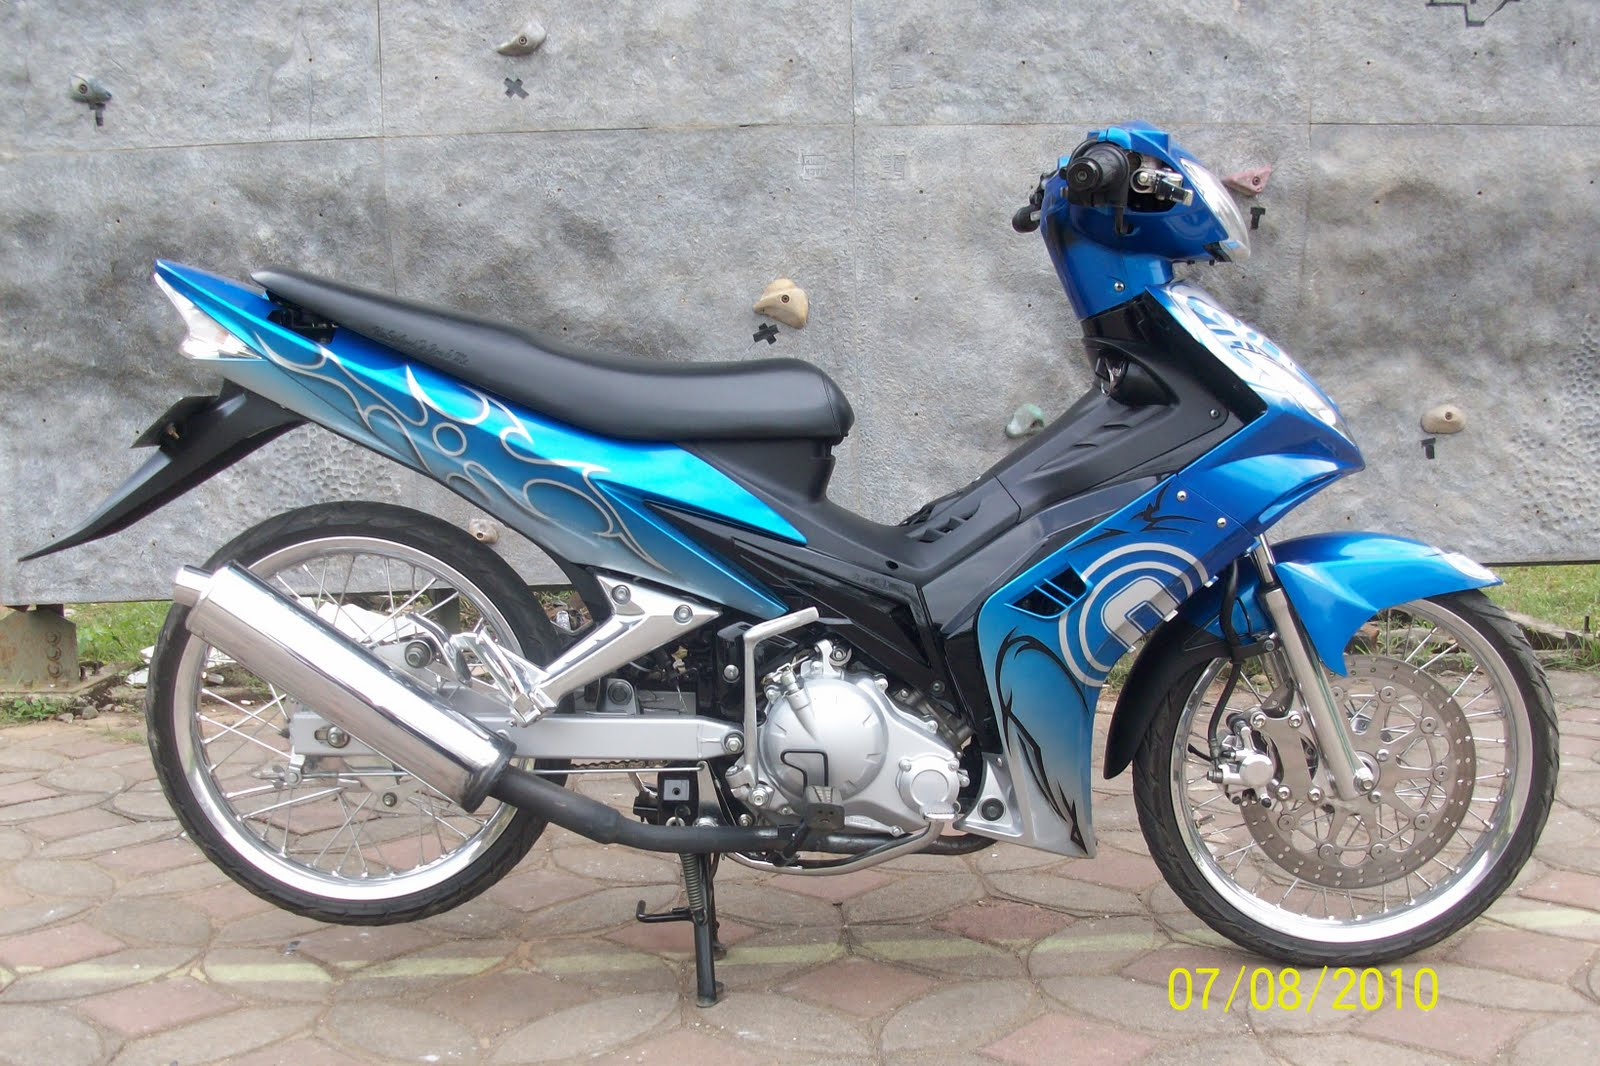 Modifikasi Motor Jupiter Mx Thn 2013